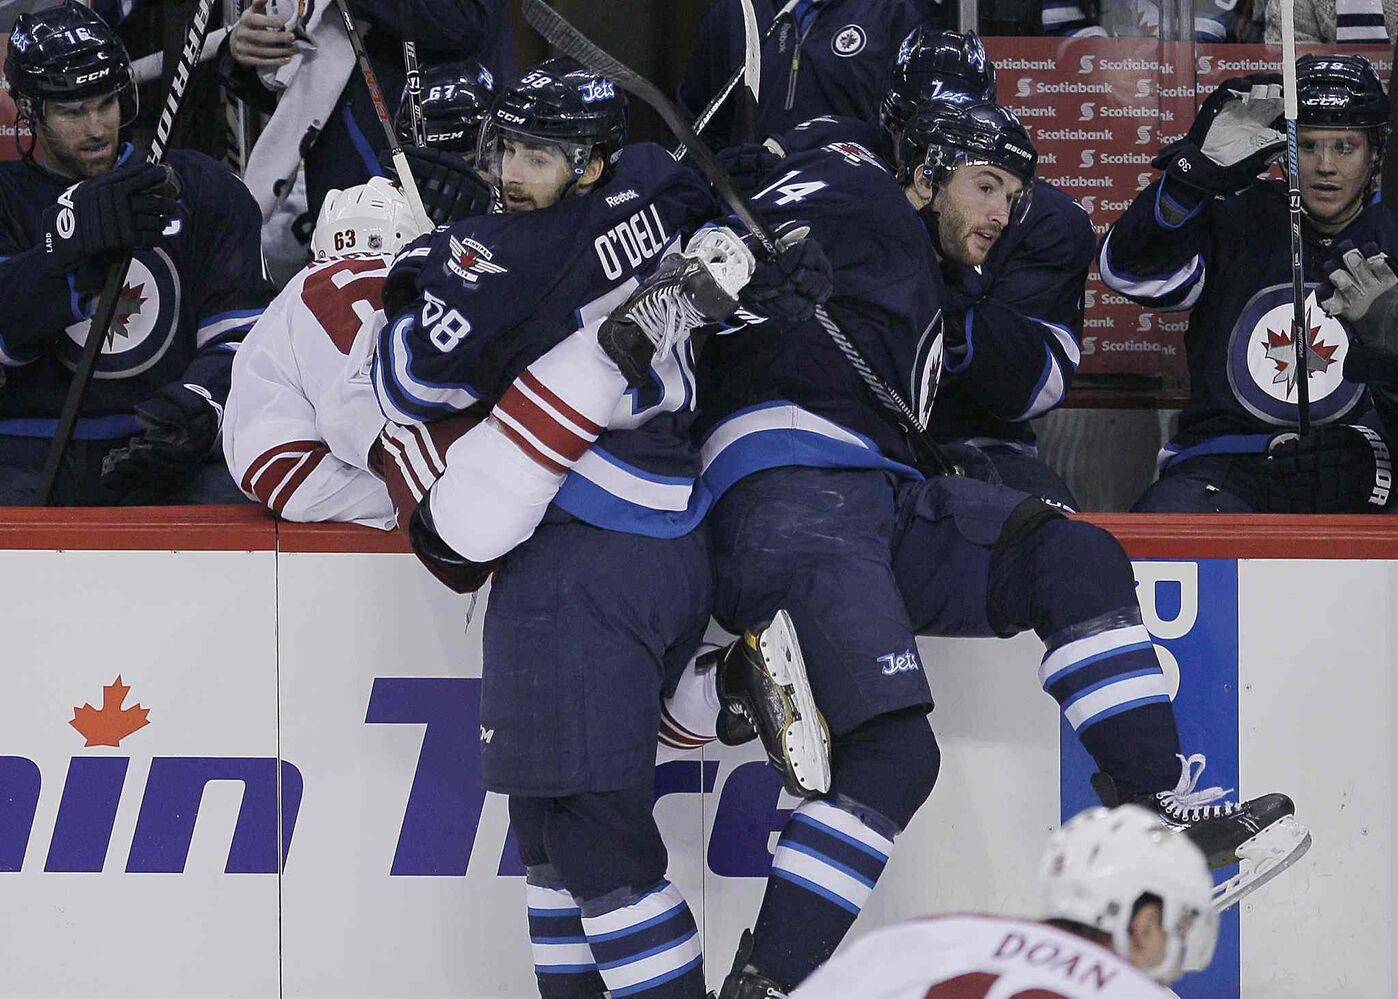 Winnipeg Jets' Eric O'Dell (58) and Anthony Peluso (14) check Phoenix Coyotes' Mike Ribeiro over the boards.